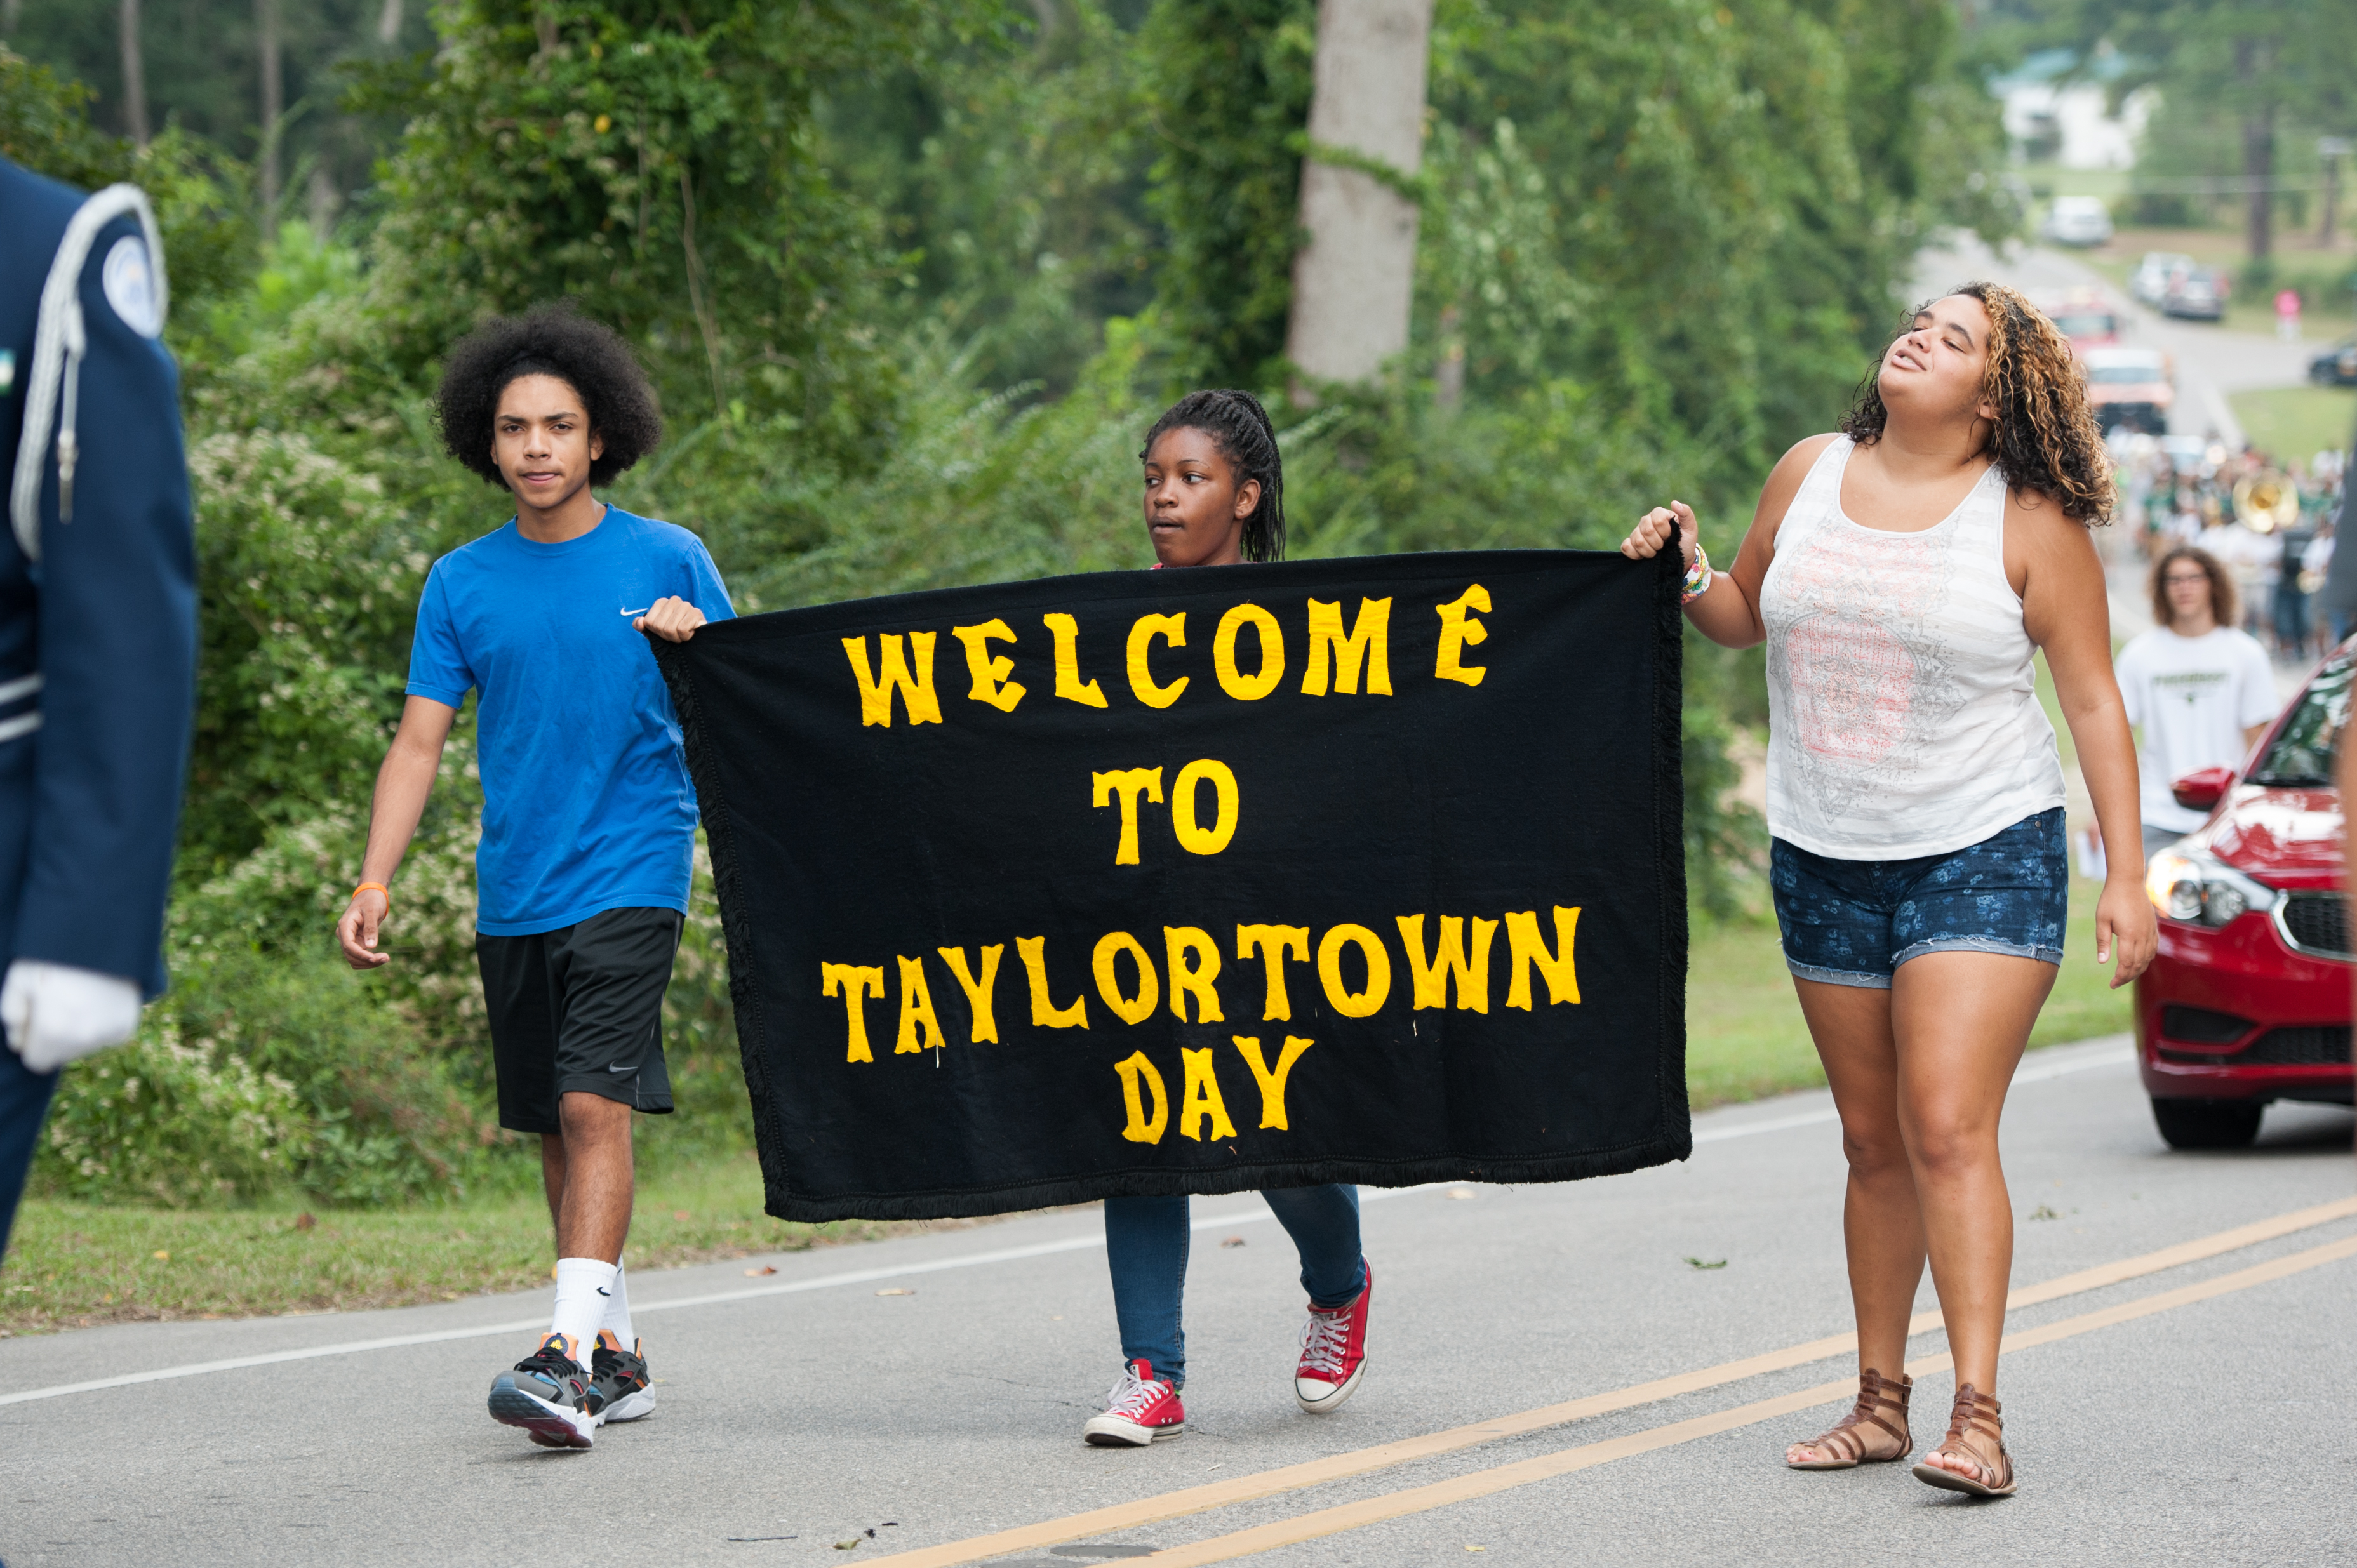 Taylortown Day 2015